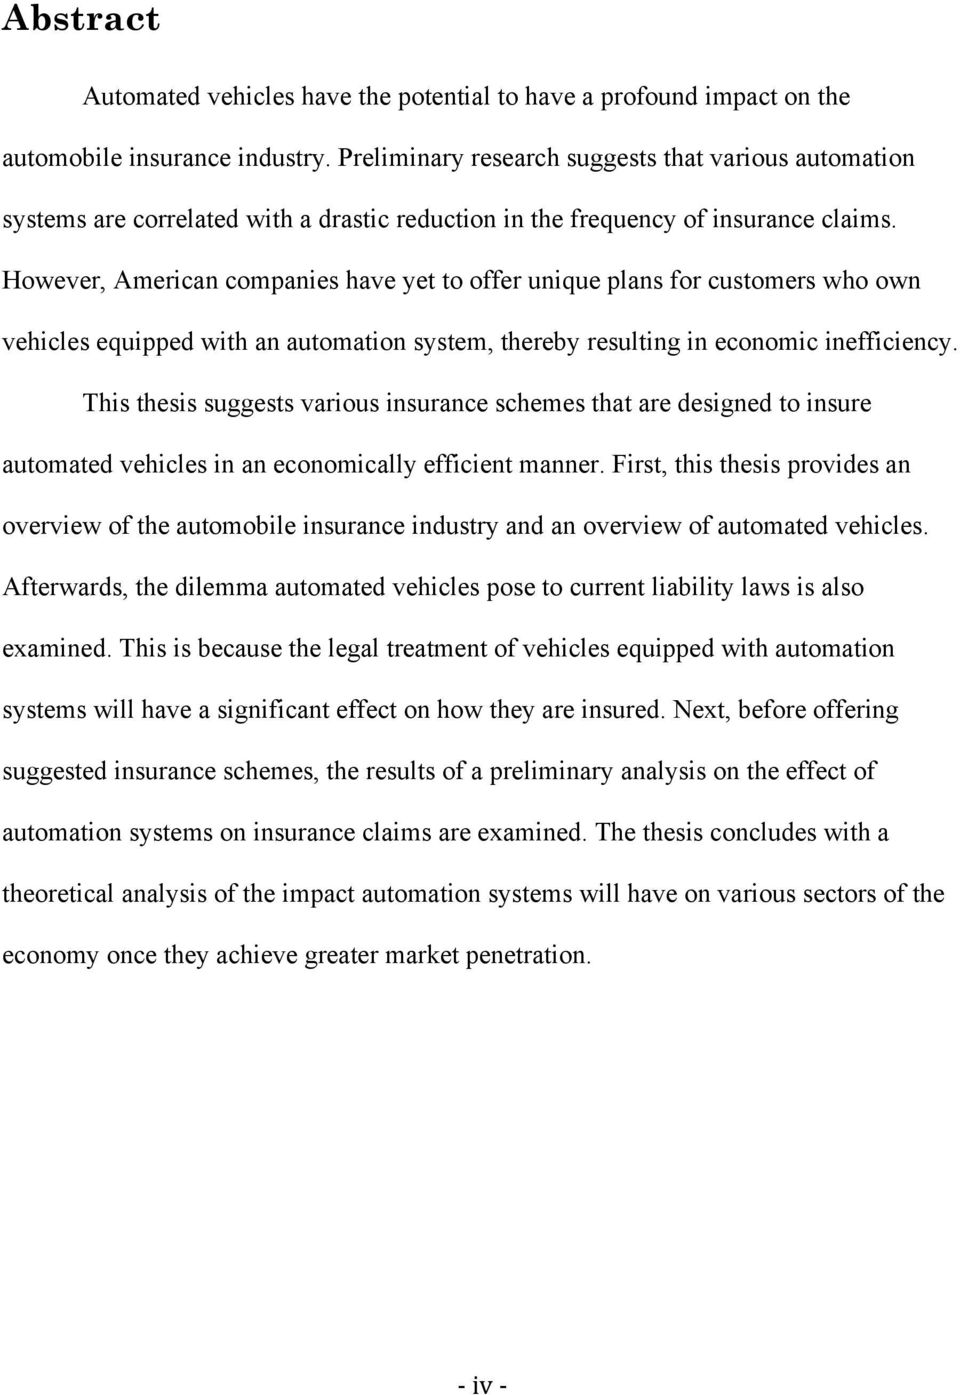 However, American companies have yet to offer unique plans for customers who own vehicles equipped with an automation system, thereby resulting in economic inefficiency.